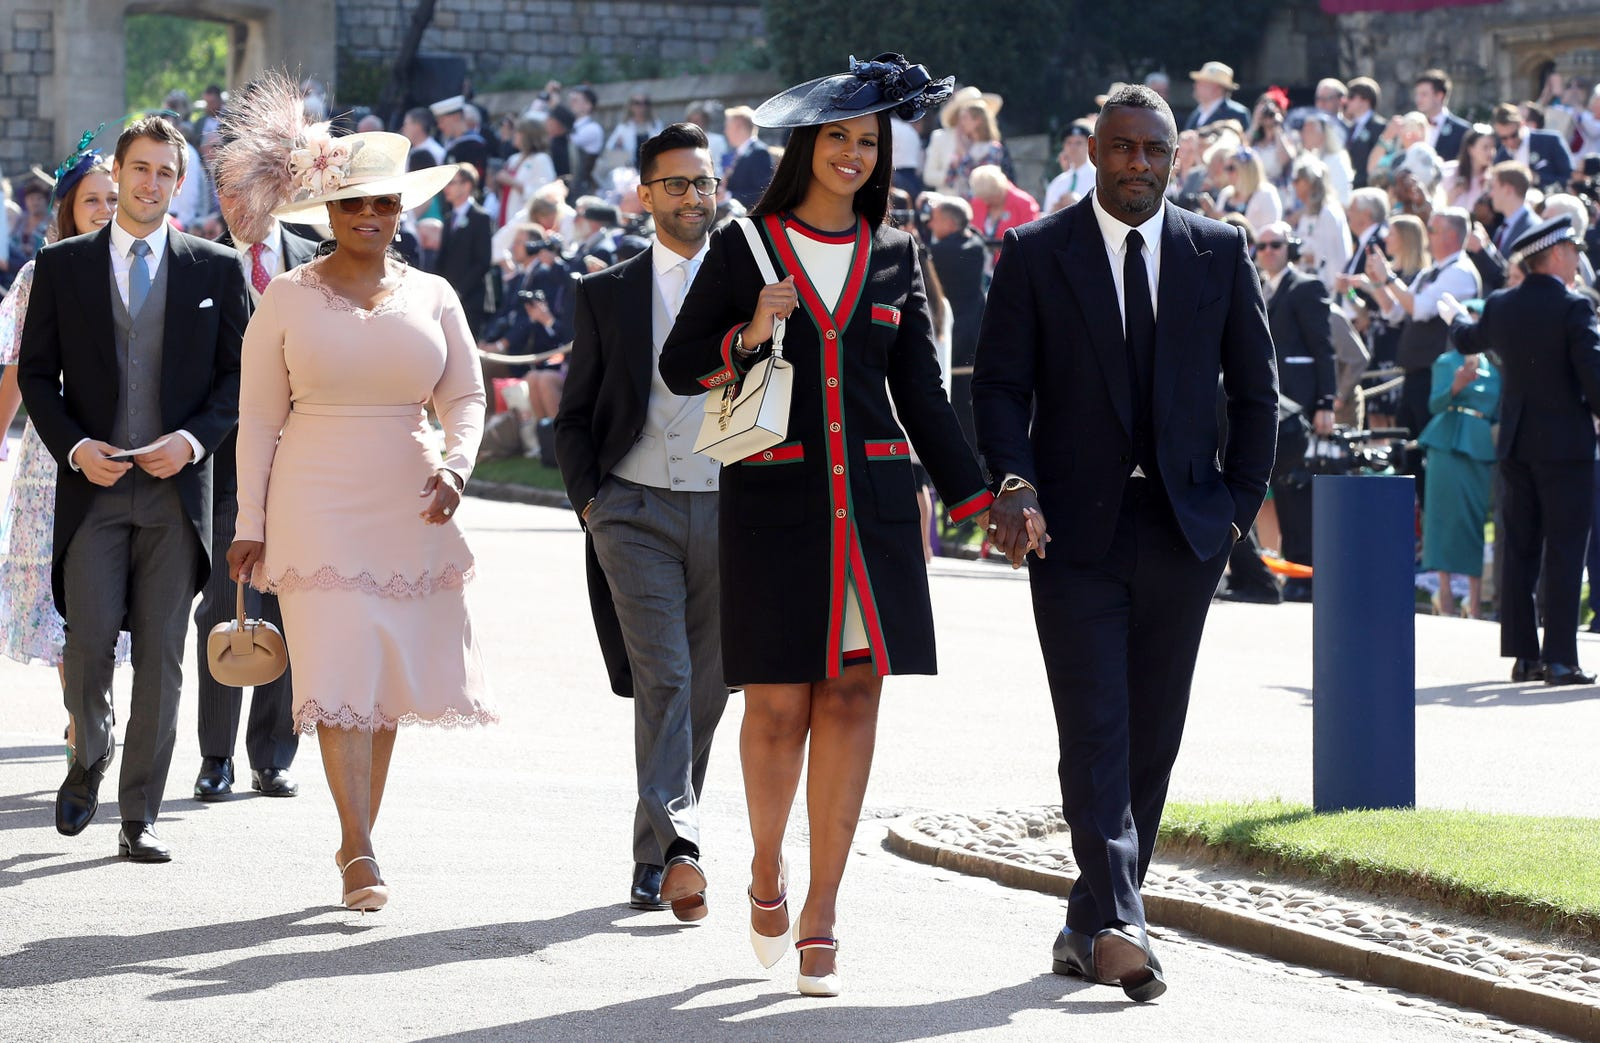 Idris Elba and Sabrina Dhowre followed by Oprah Winfrey (fourth right) arrive at St George's Chapel at Windsor Castle for the wedding of Meghan Markle and Prince Harry on May 19, 2018, in Windsor, England.